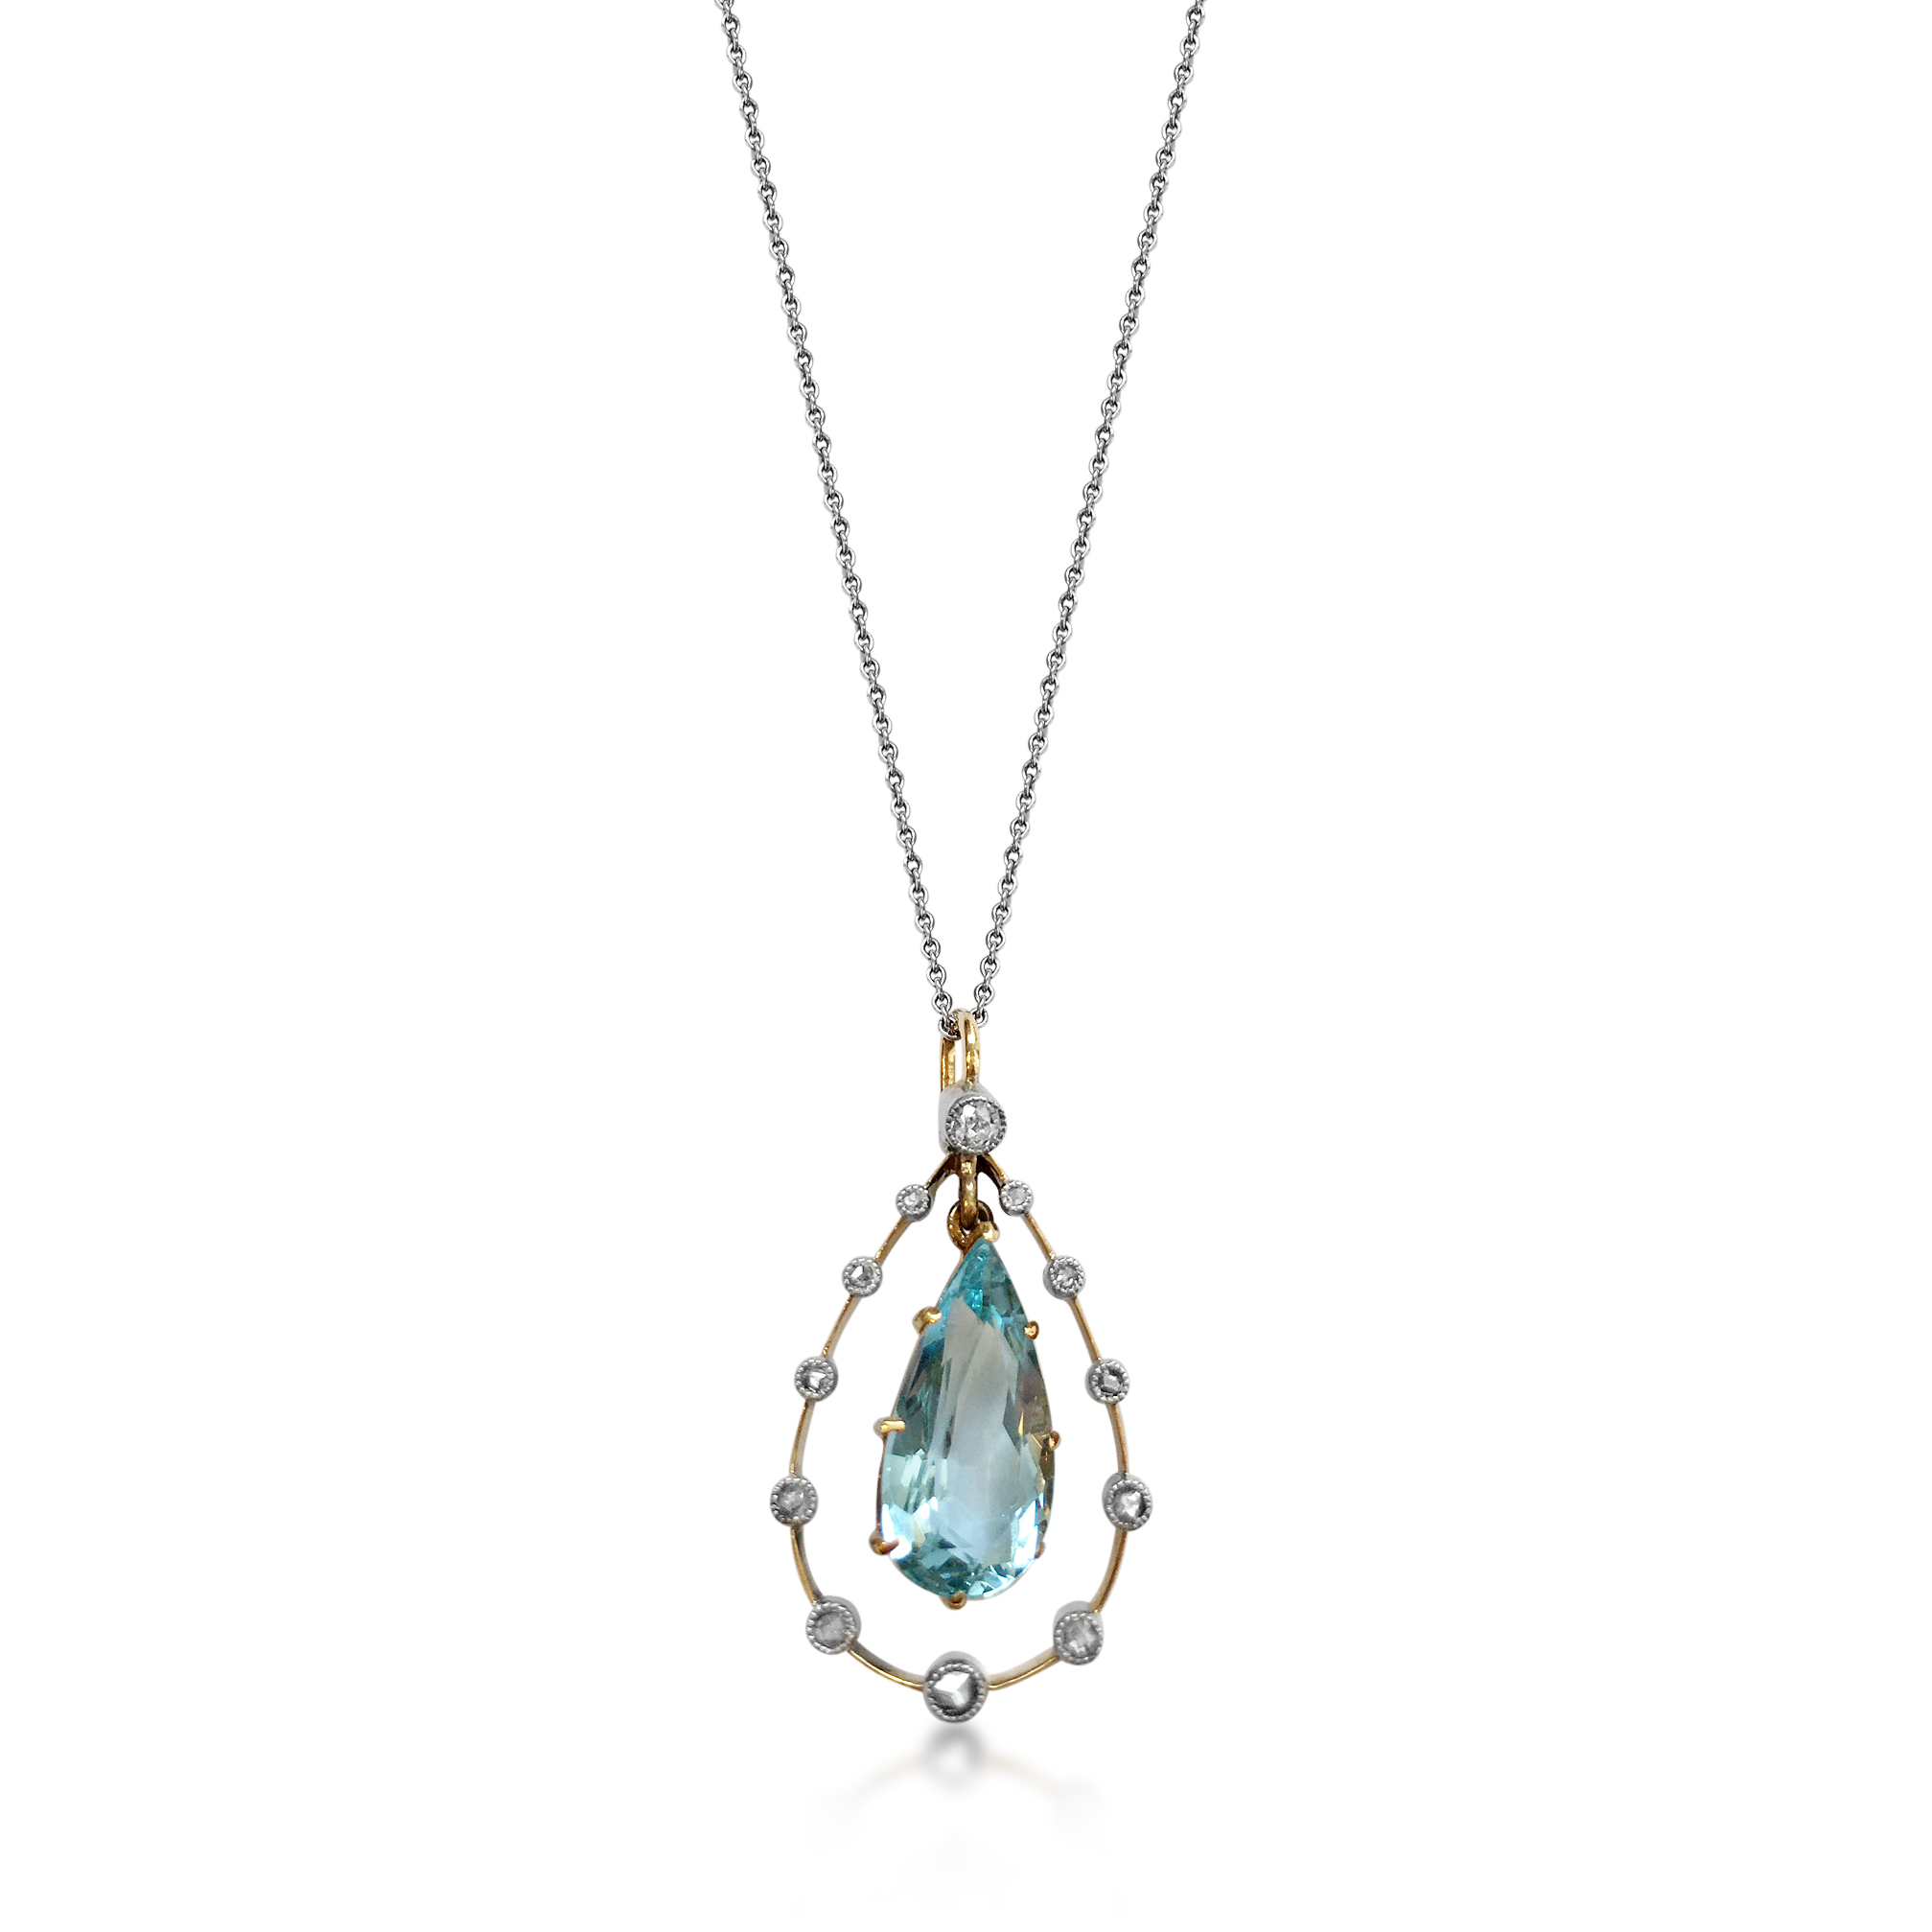 Antique pear-shape aquamarine and diamond pendant